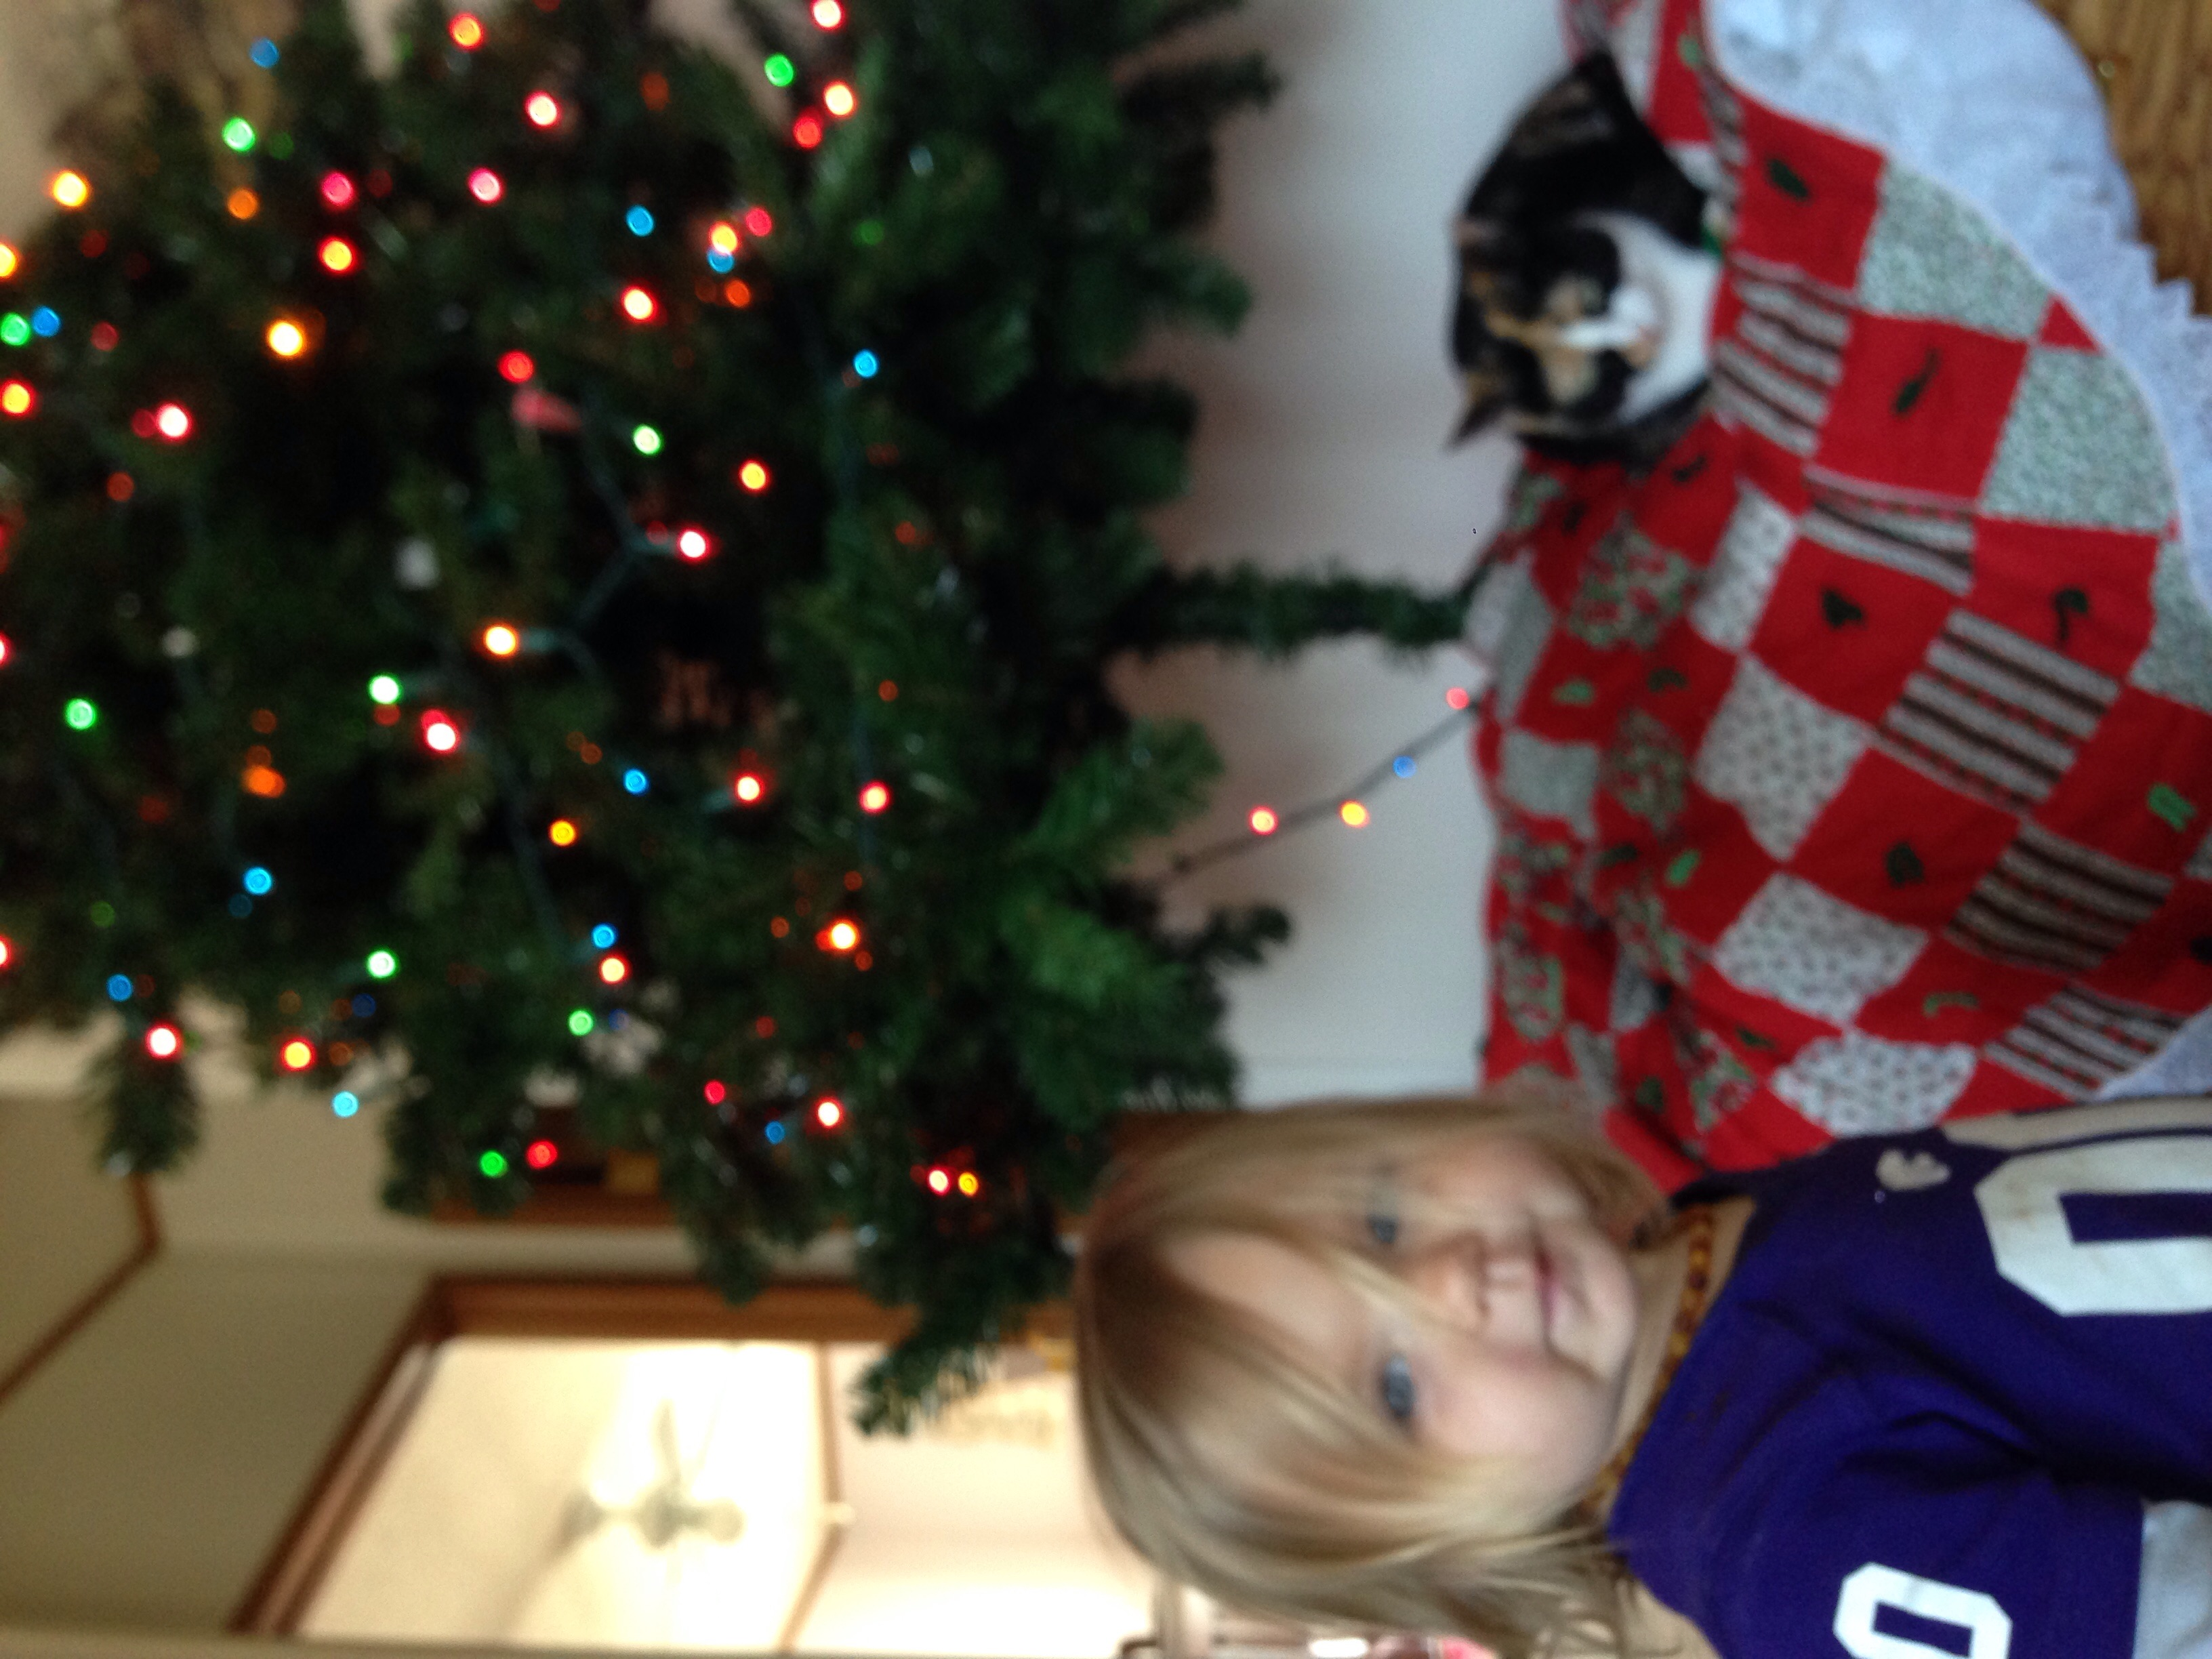 Toddler Proof Christmas Tree.Toddlerizing Your Christmas Tree Farm Fit Living